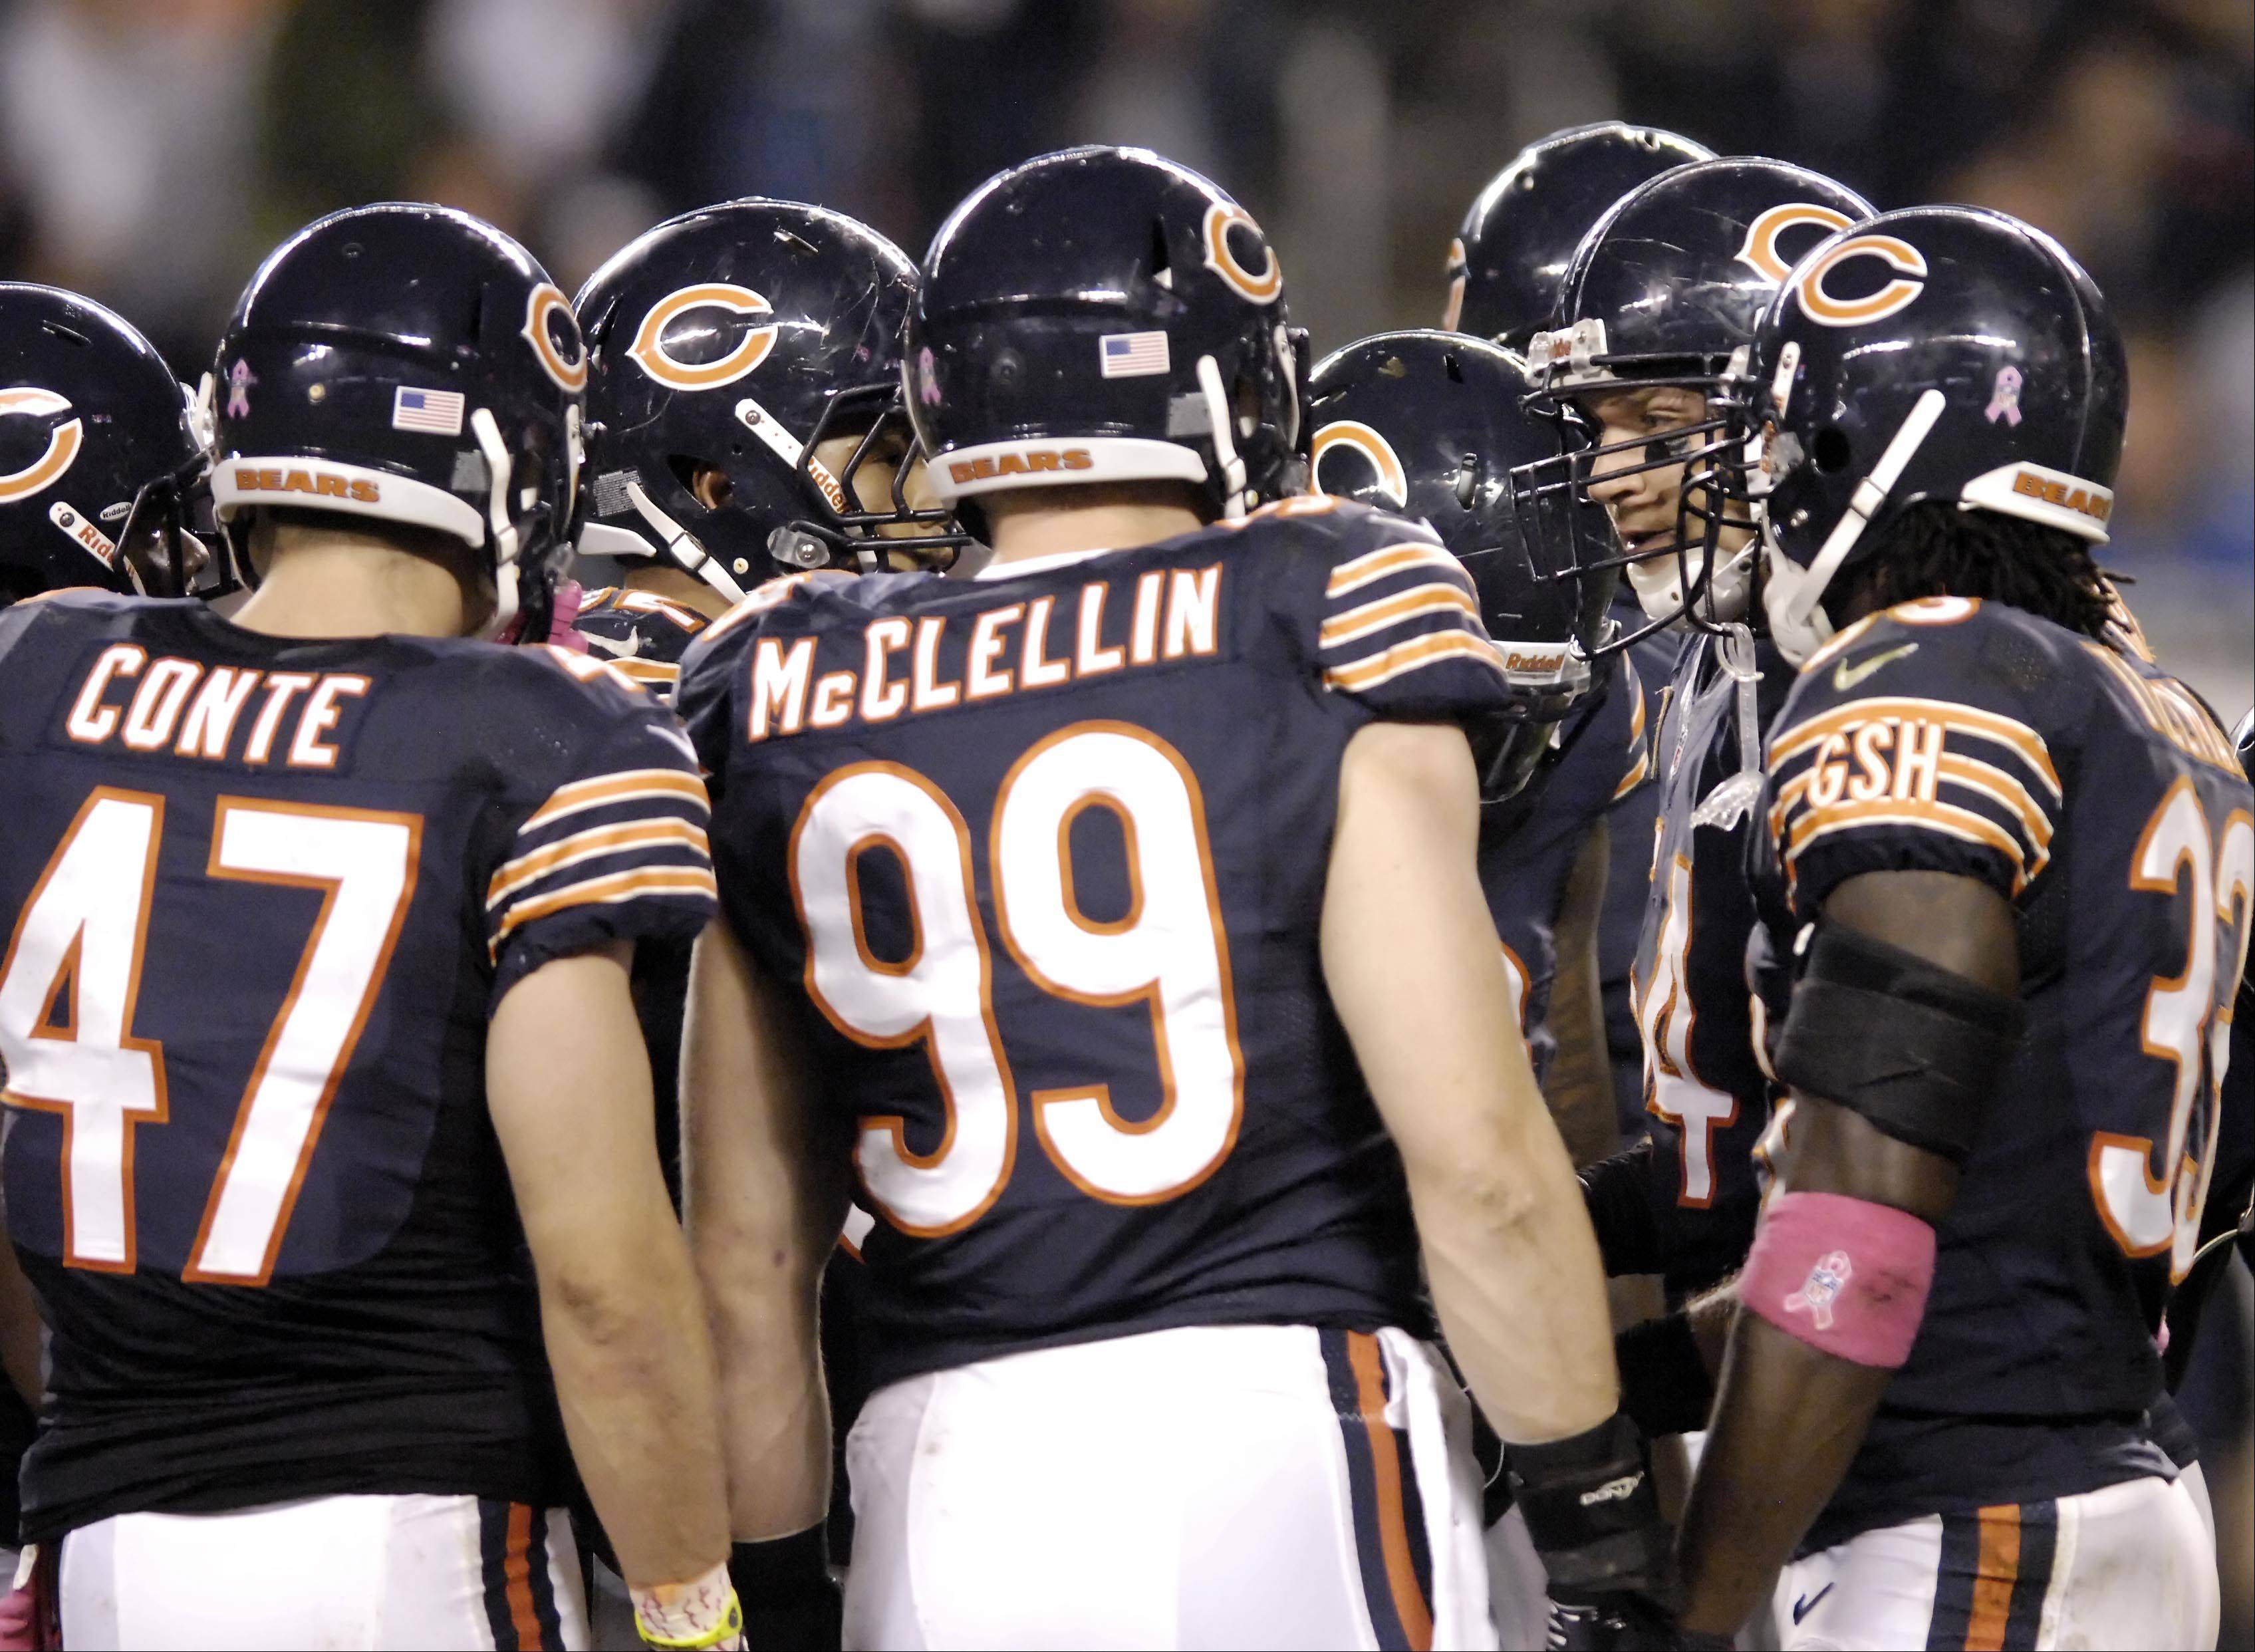 Chicago Bears middle linebacker Brian Urlacher speaks to the defense late in the game.